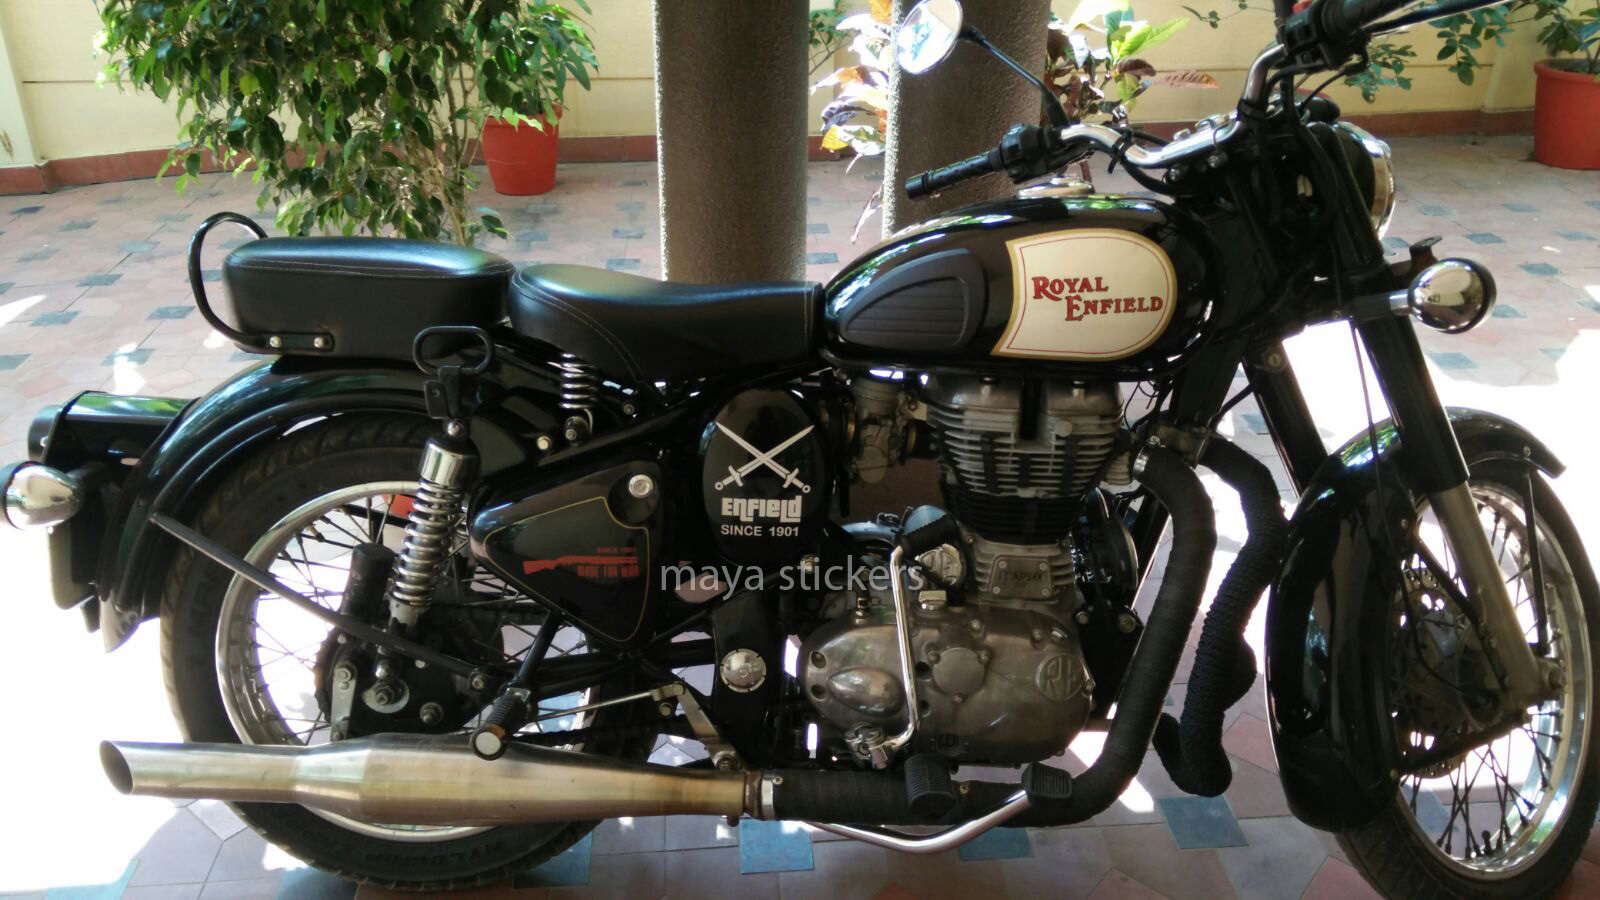 Crossed sword sticker on royal enfield classic 350 black